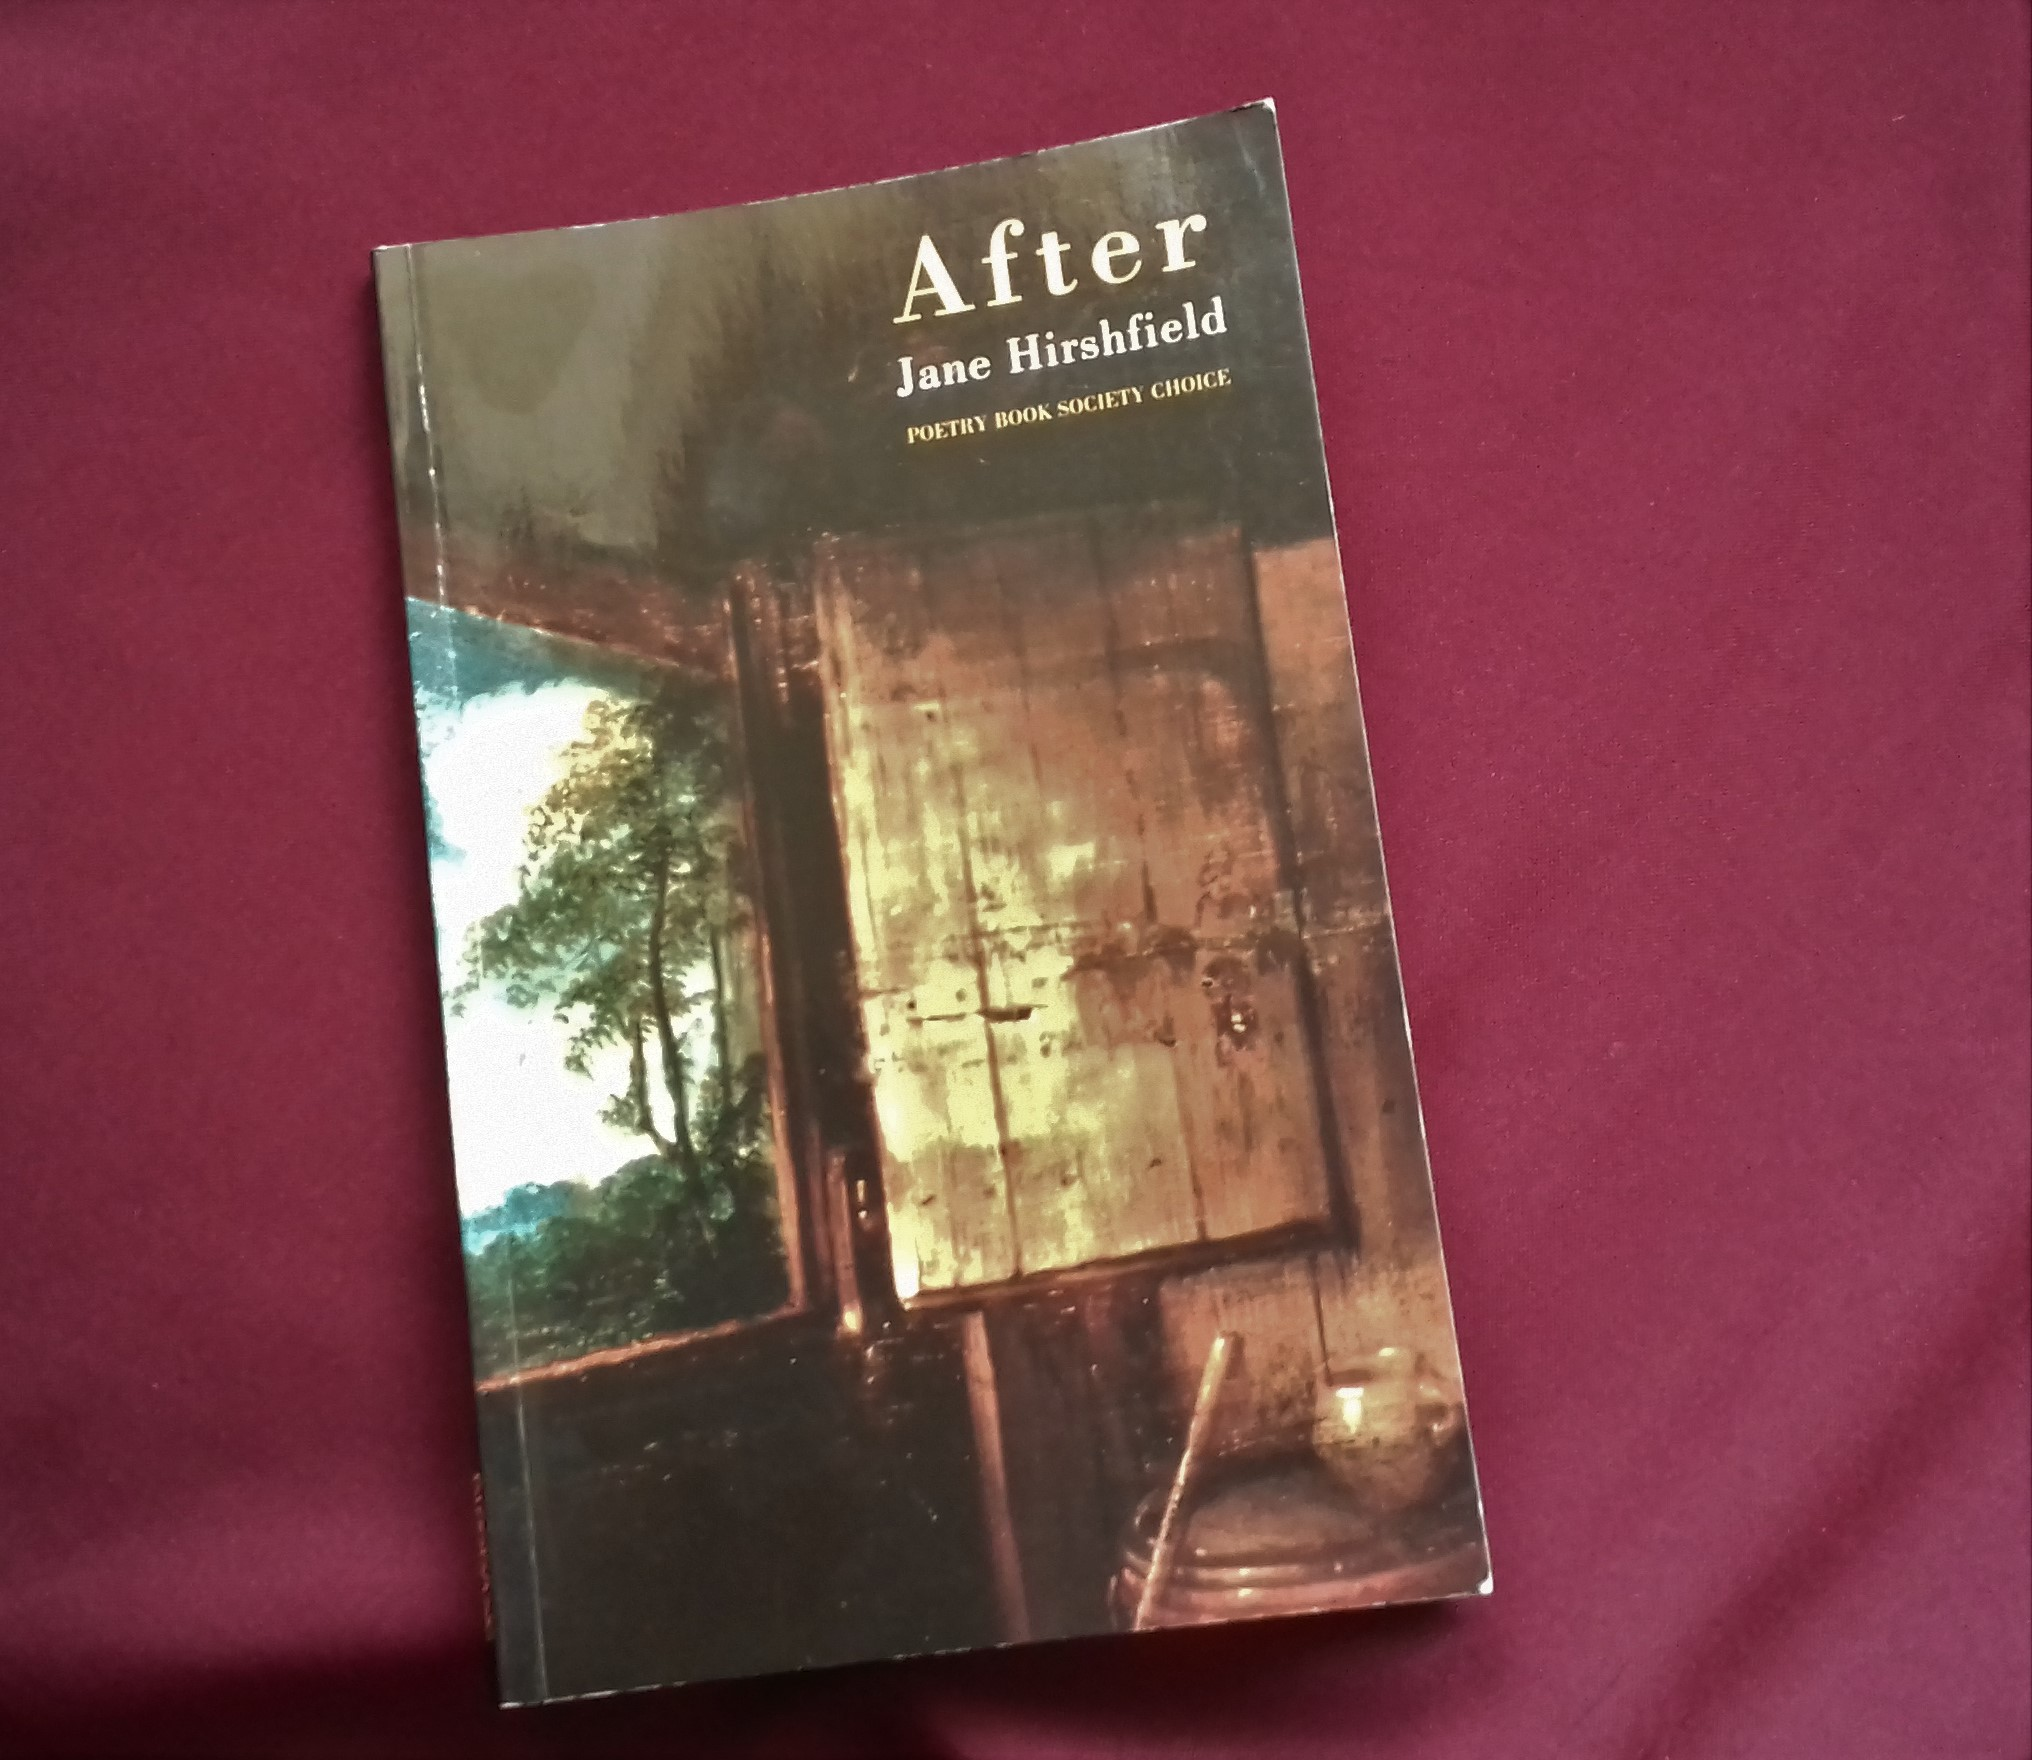 A photograph of the collection 'After'. The cover of the book is a painting of a window opening onto a landscape with trees and sky.